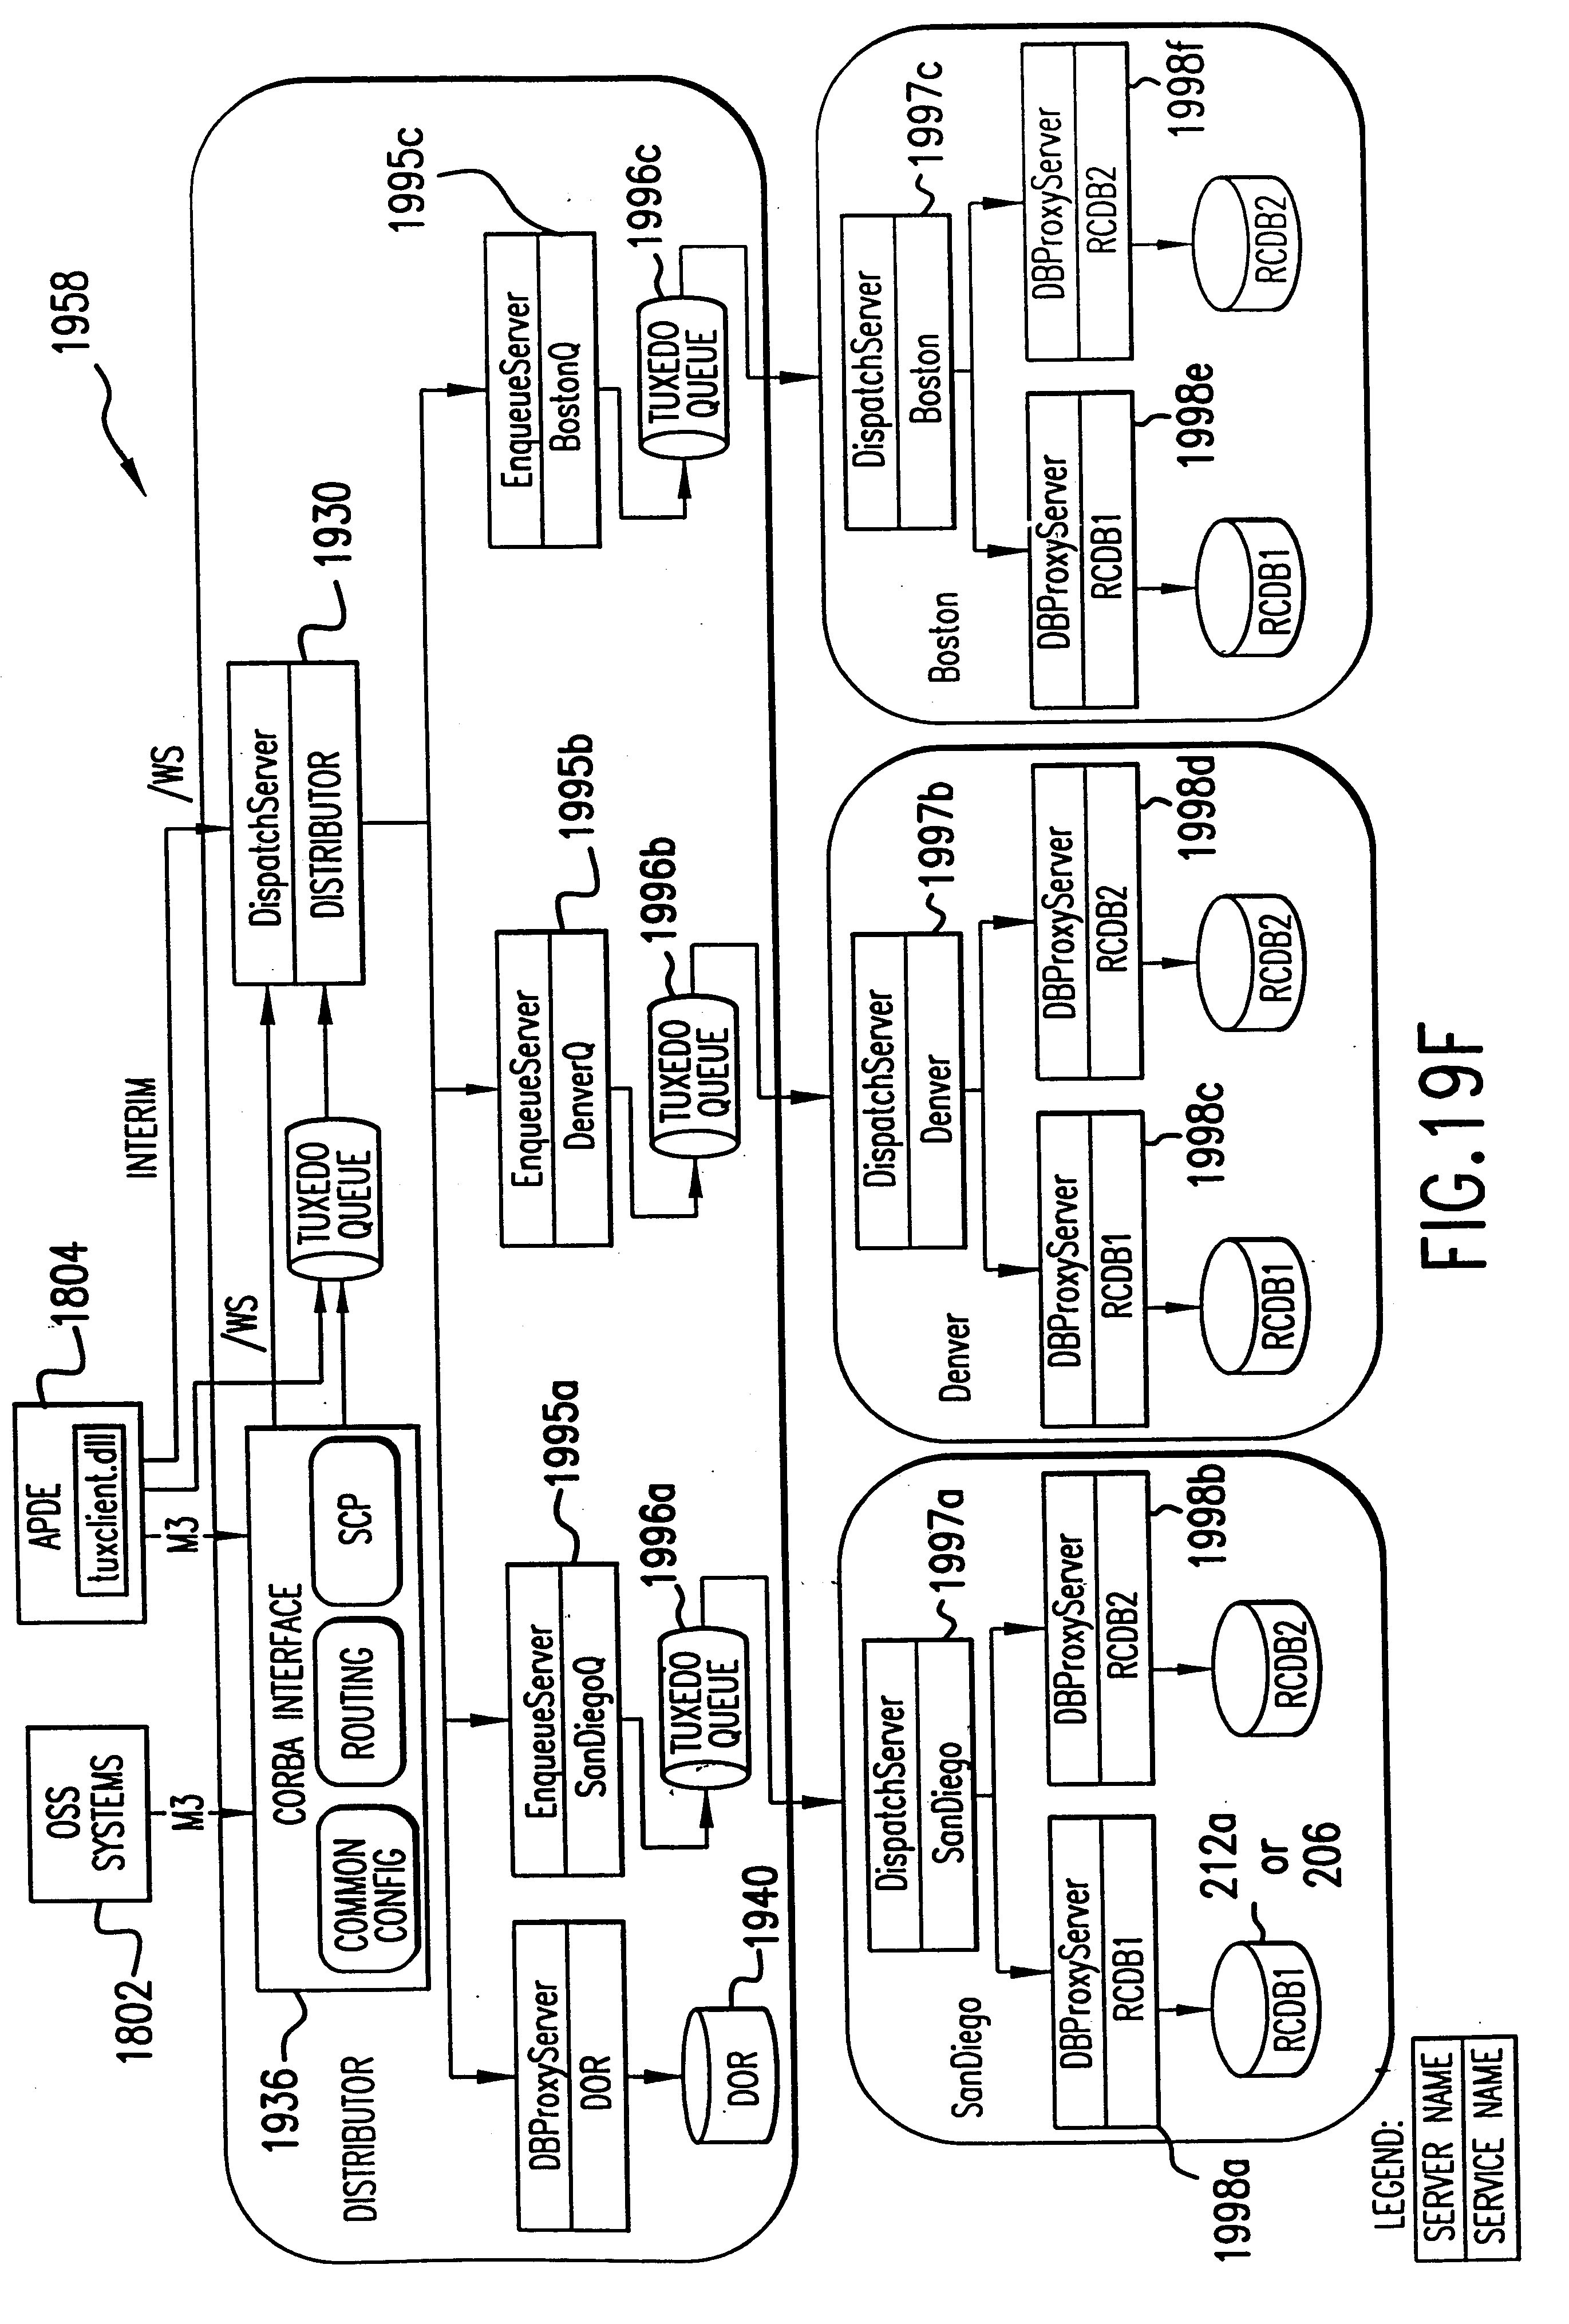 Patent Us 6614781 B1 Rcs Prevents Triggering A Timer B Unless Is Triggered By Images